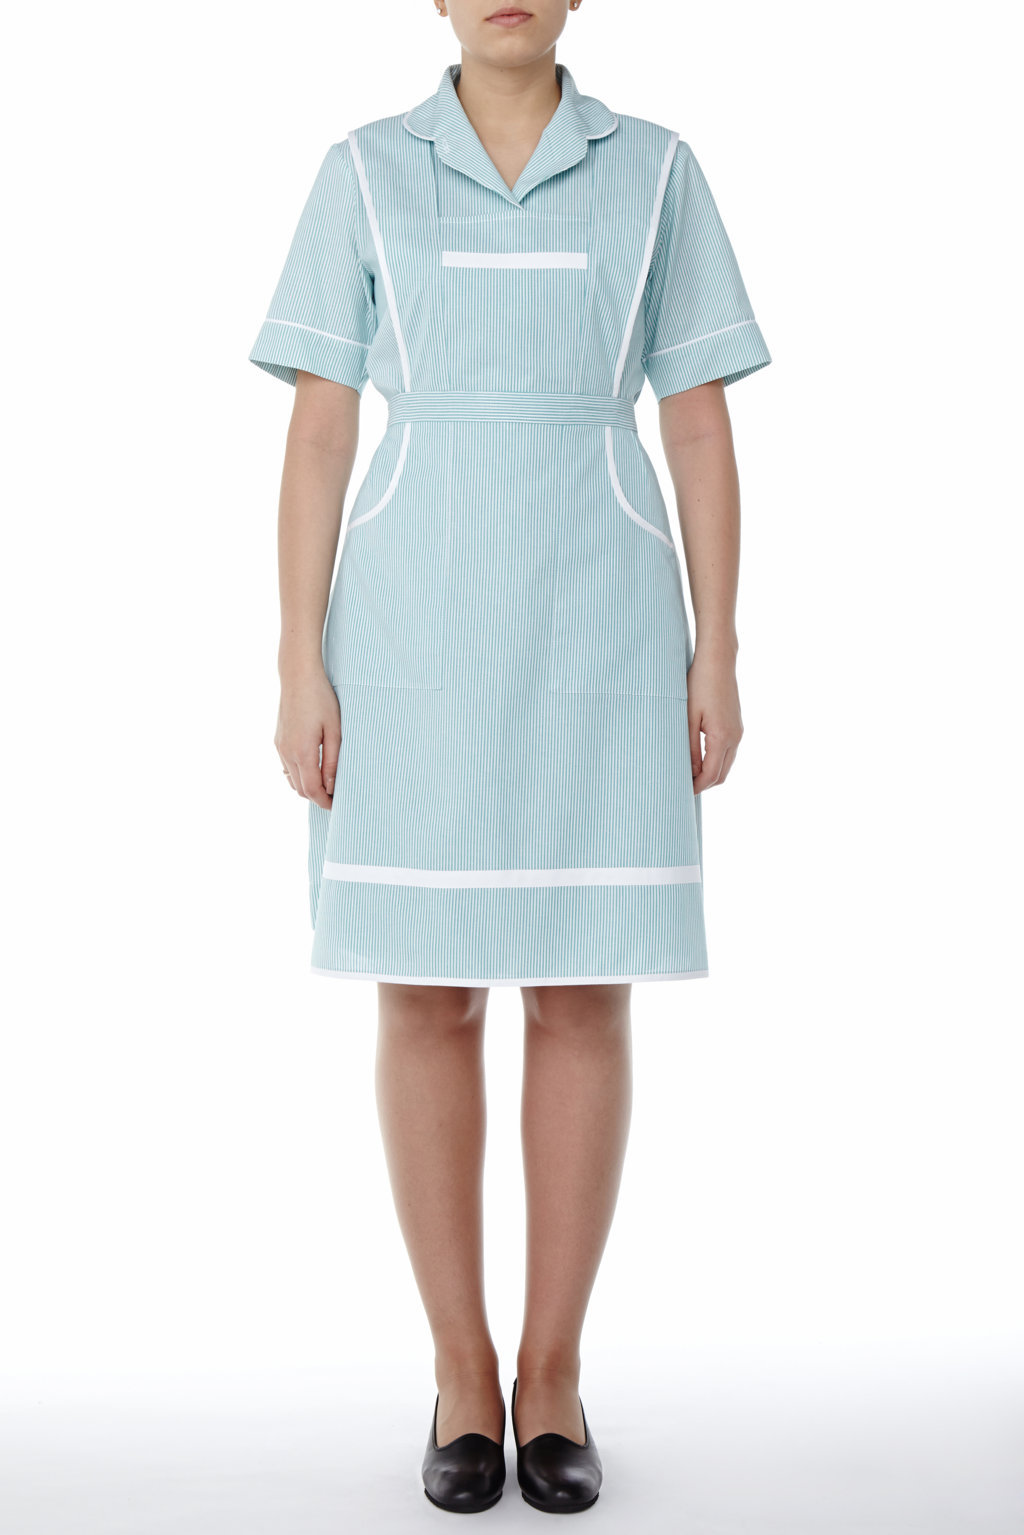 Carola dress - Hotel Maid Uniforms - Mercatores Made in Italy